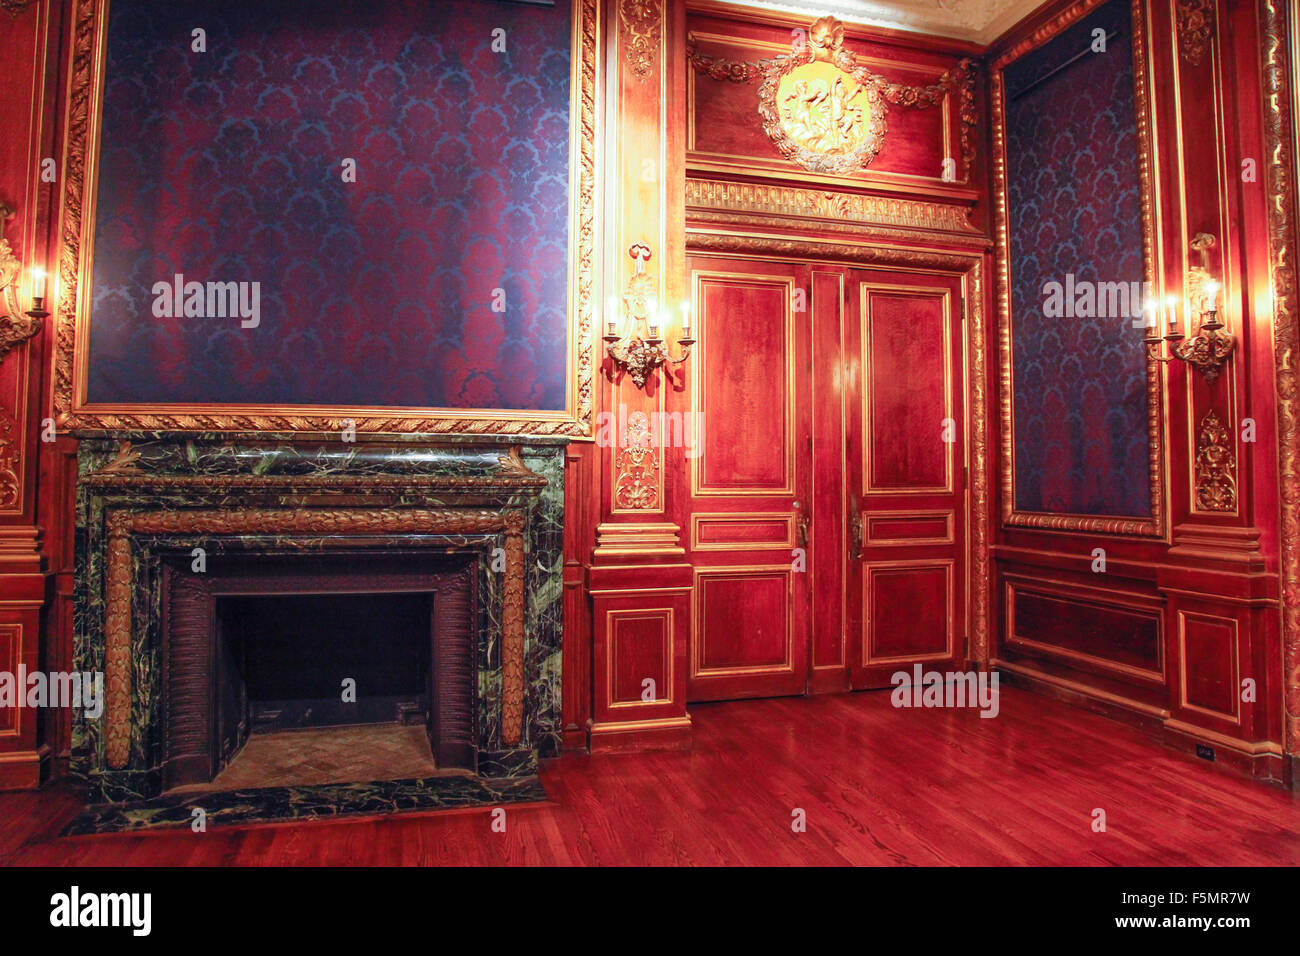 marble fireplace in baroque style room in the galleries of the